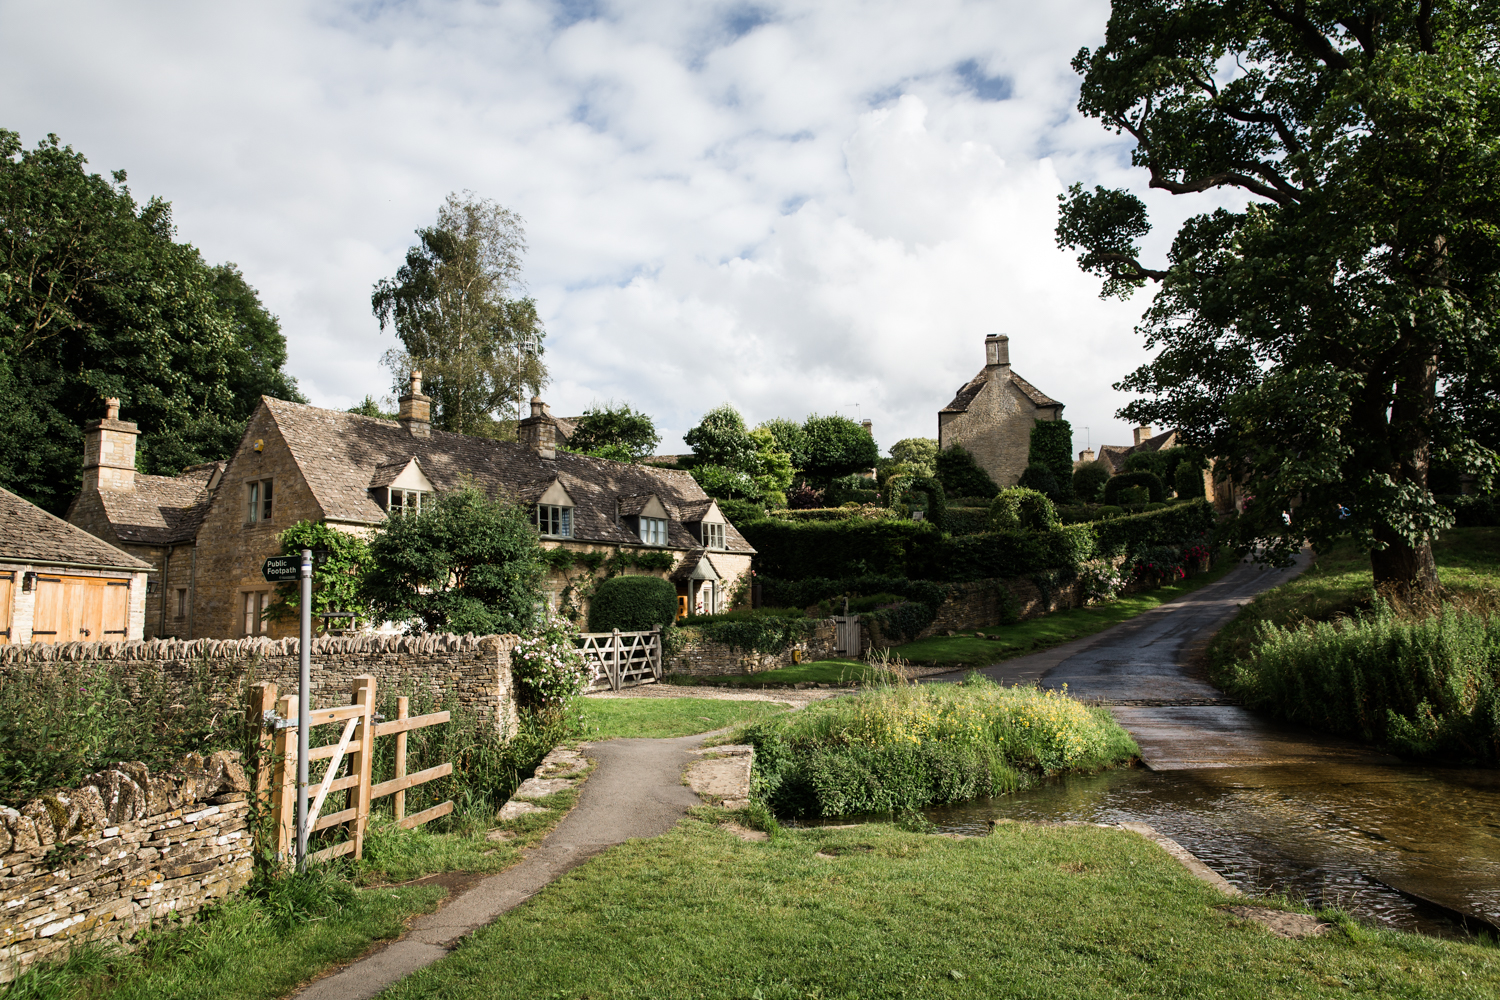 English Countryside Lean Timms  (16 of 18).jpg